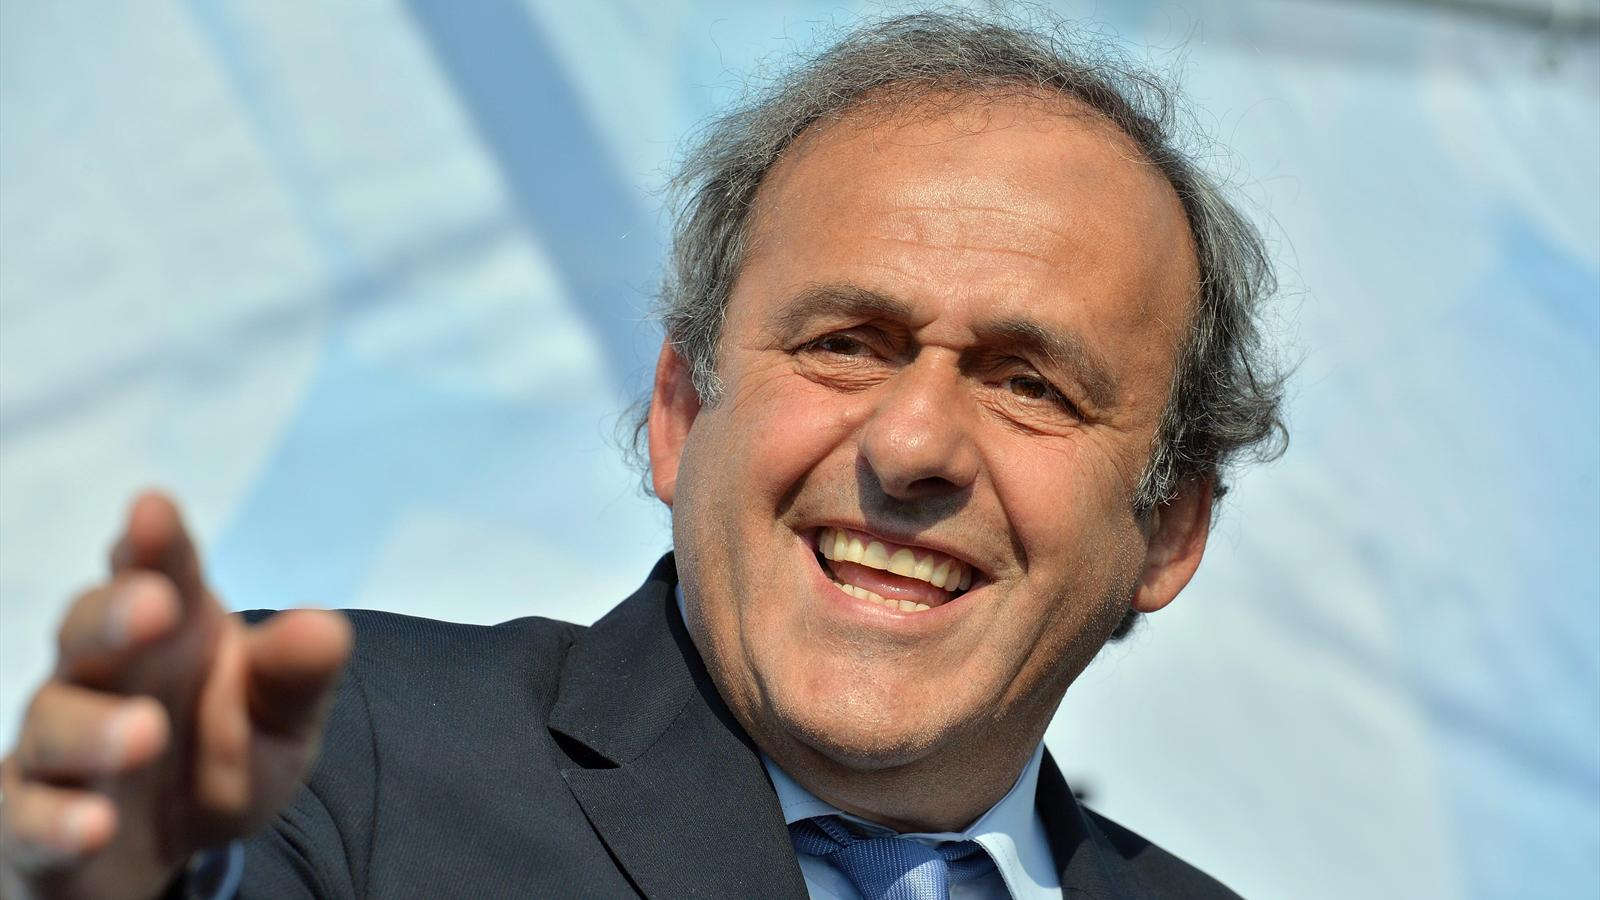 fifa platini n 39 est pas candidat je ne vais pas me suicider d dramatise t il football. Black Bedroom Furniture Sets. Home Design Ideas